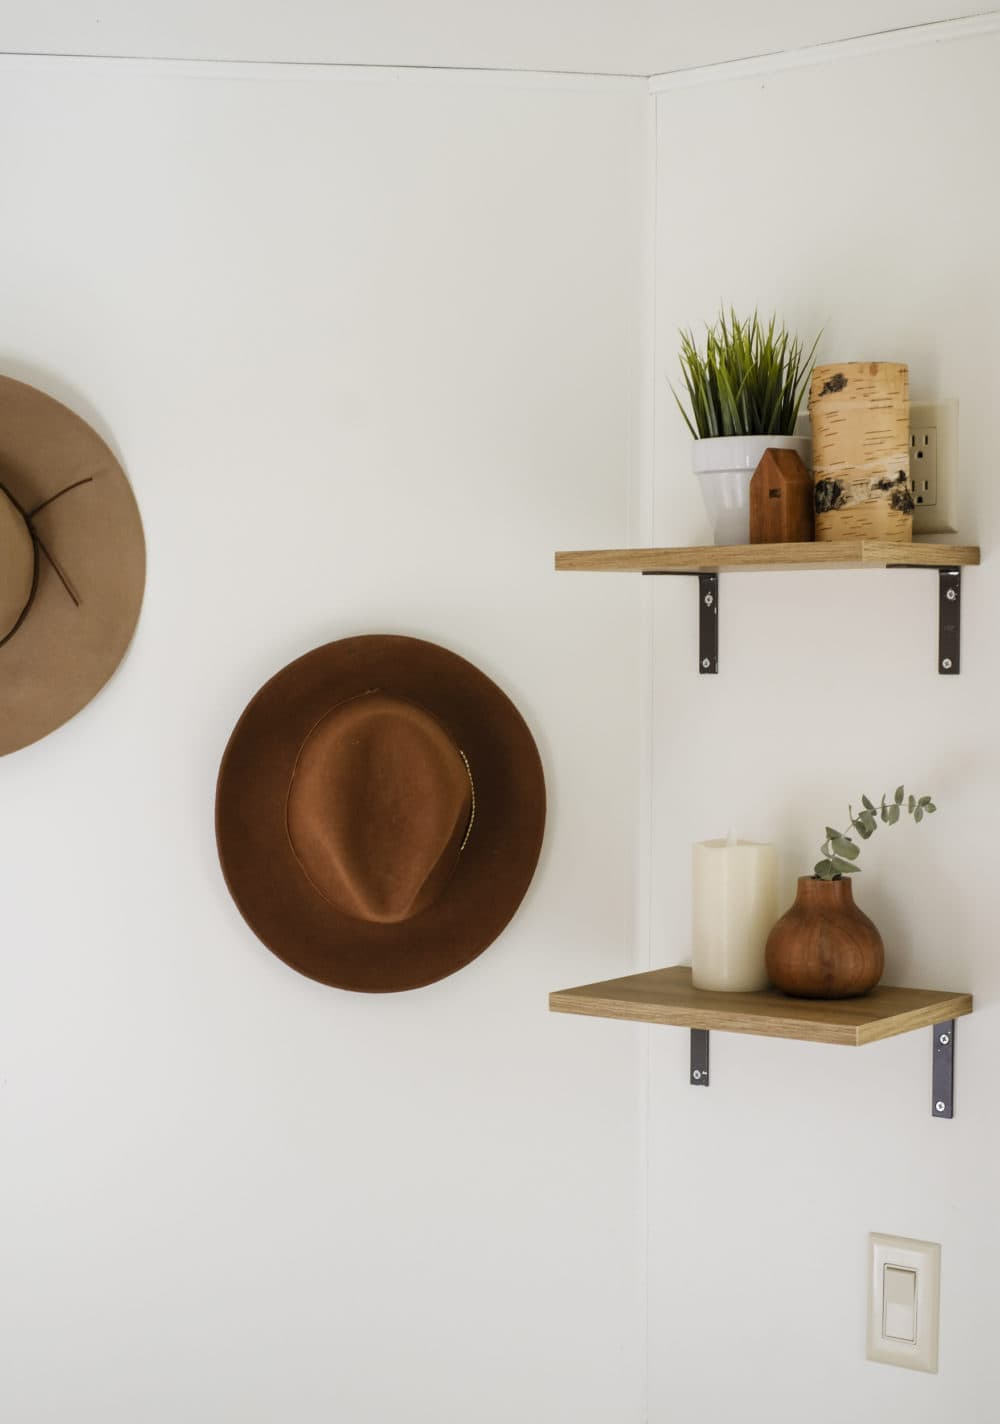 Open shelving on the wall and hats hung on a hook